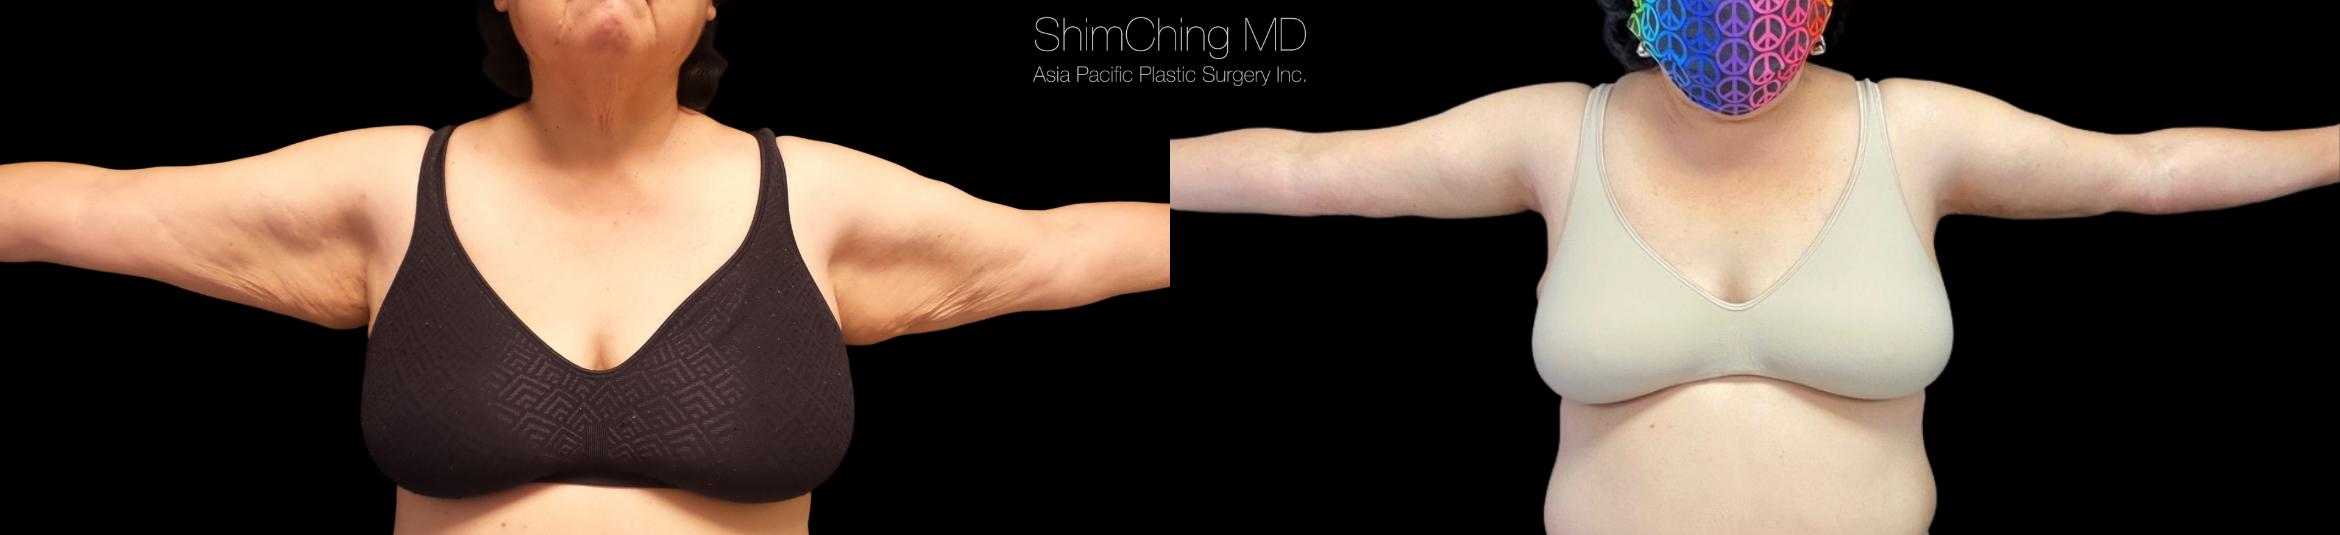 Arm Lift Case 317 Before & After Front | Honolulu, HI | Shim Ching, MD: Asia Pacific Plastic Surgery